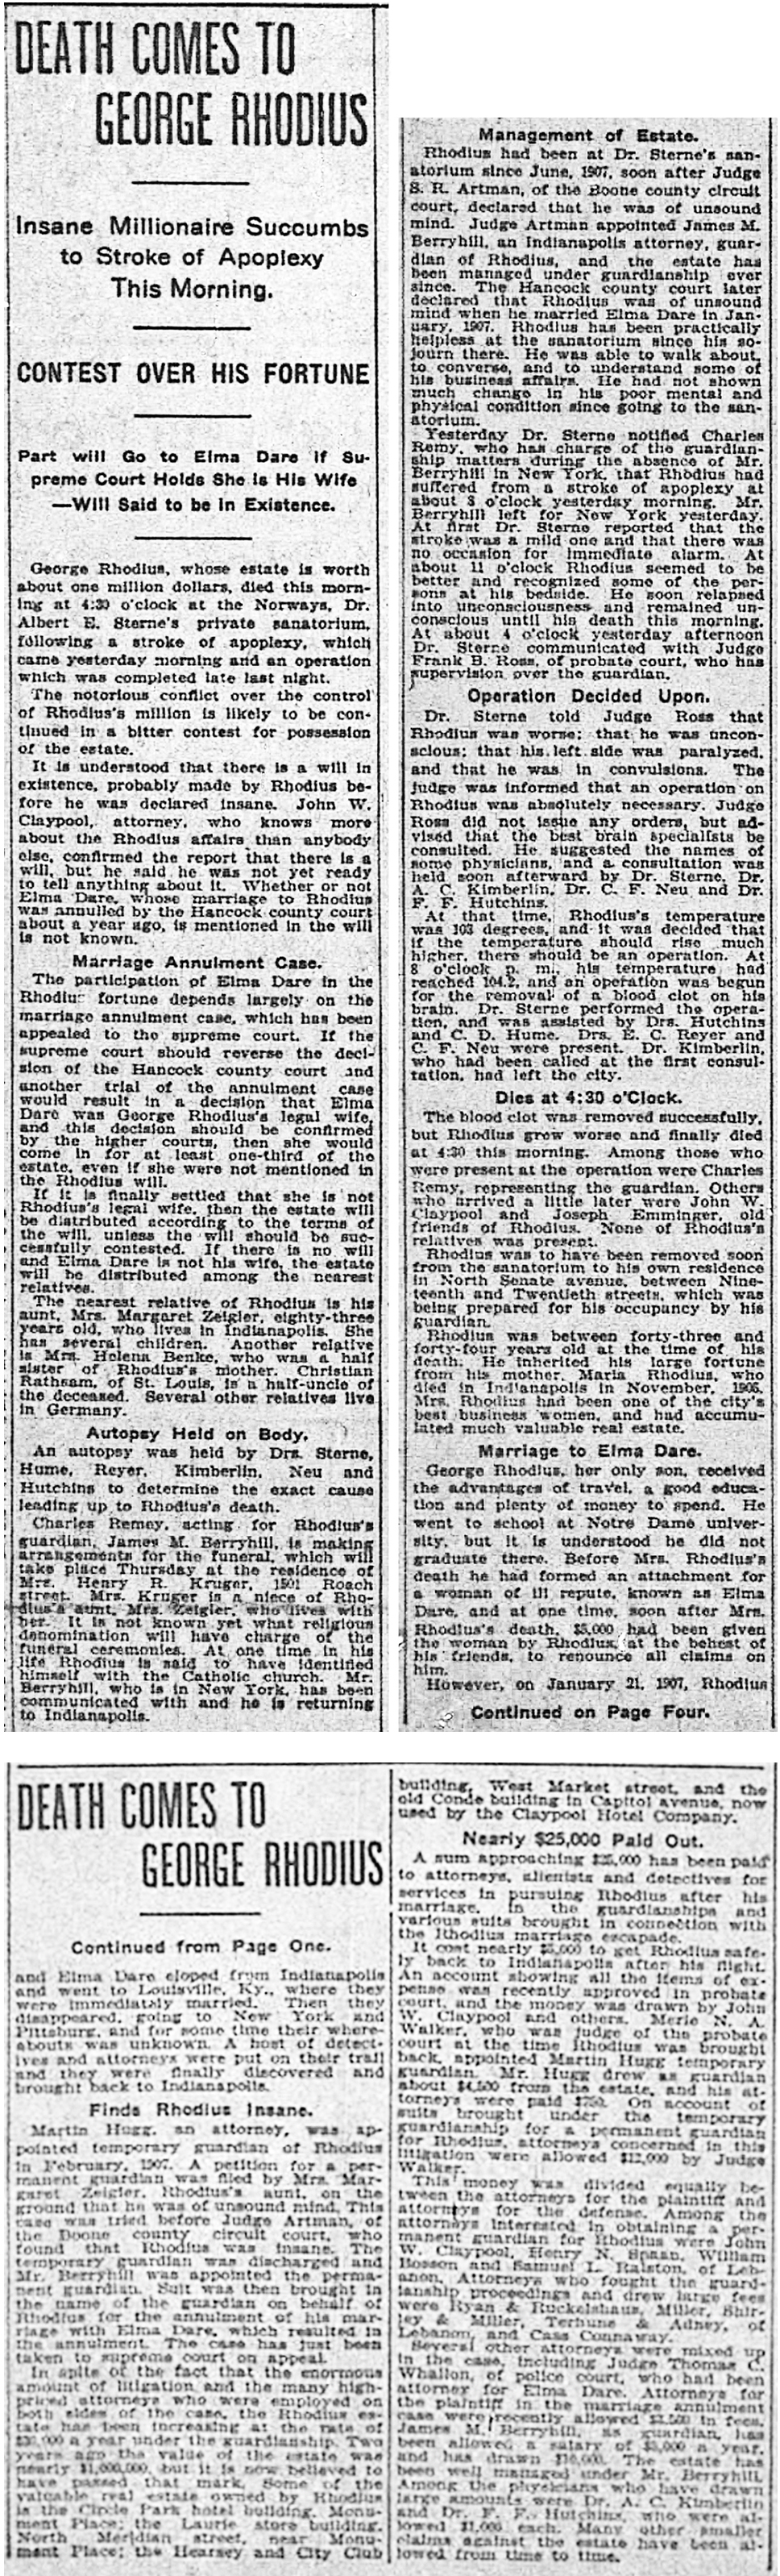 (December 30, 1909 Indianapolis Star scan courtesy of newspapers.com) CLICK TO ENLARGE